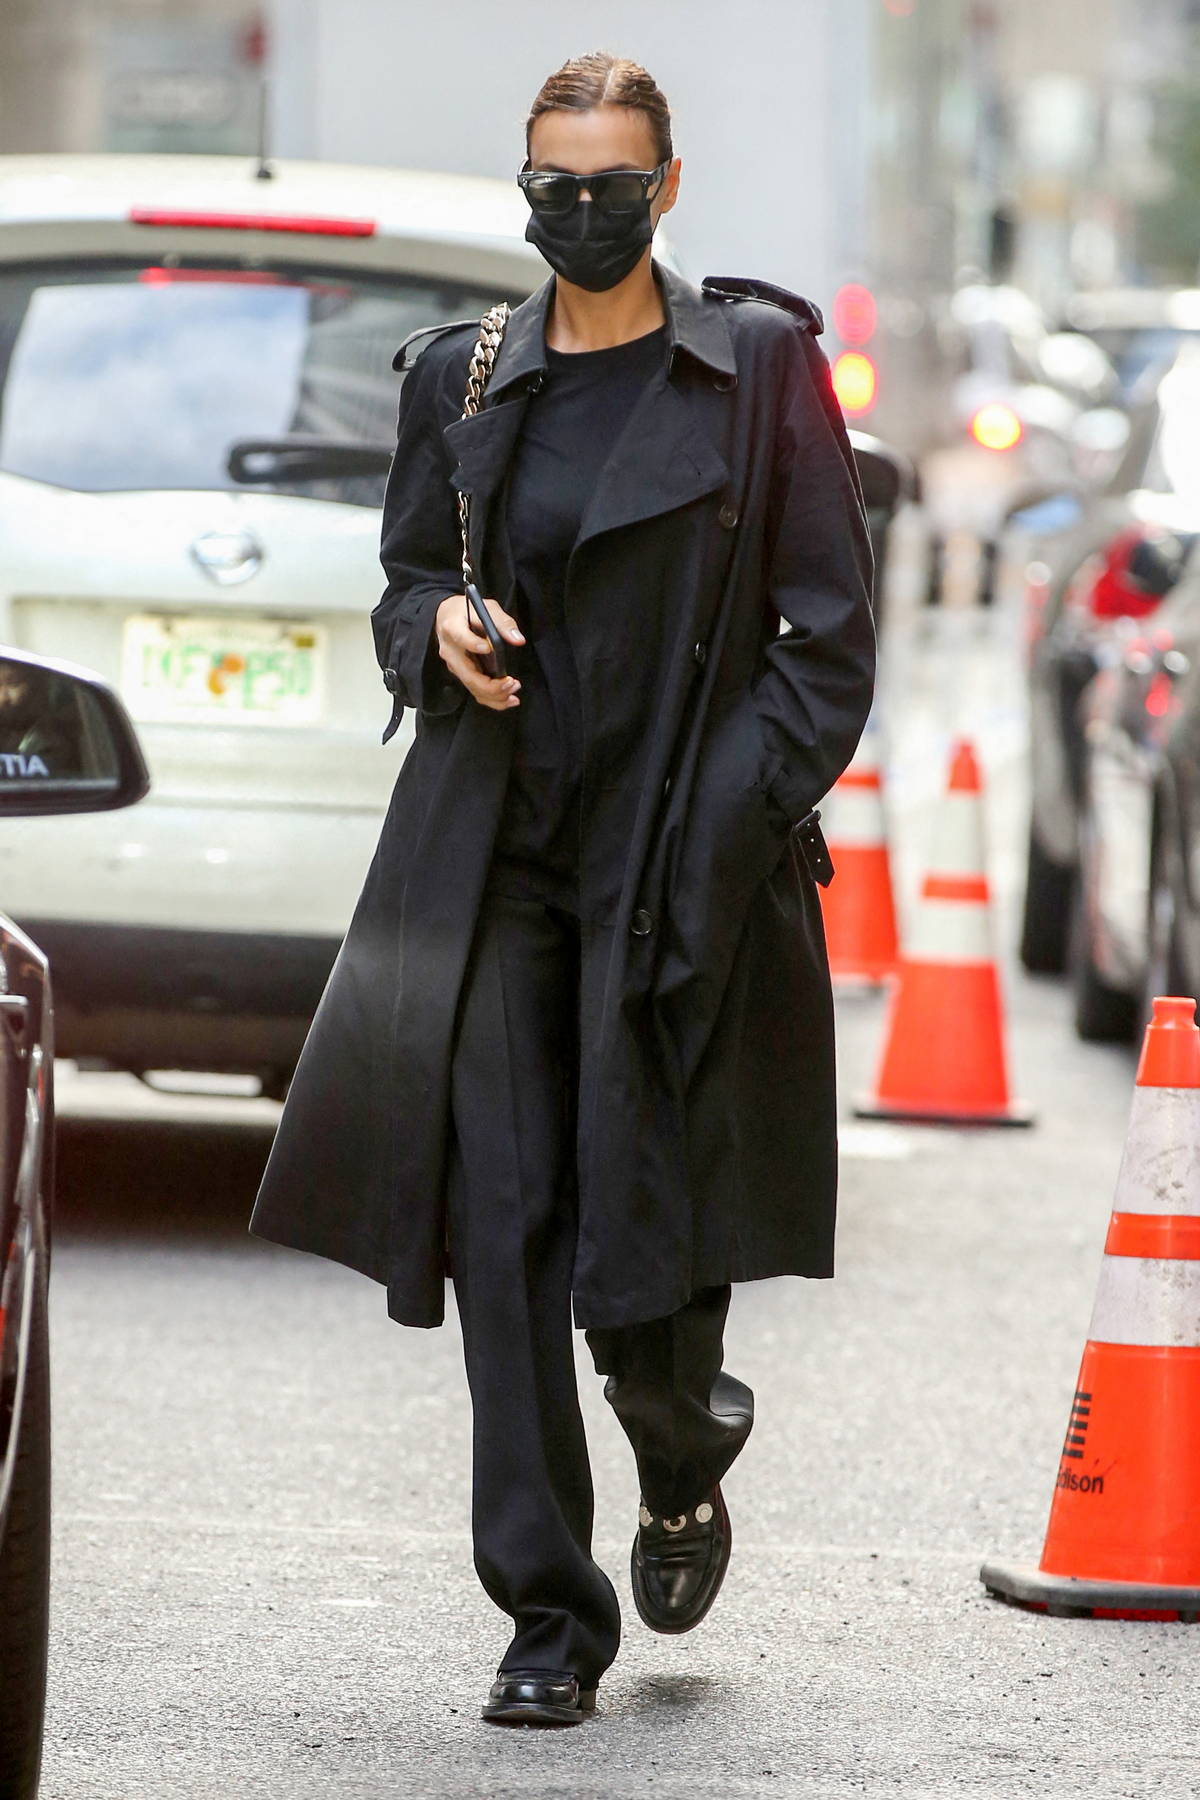 Irina Shayk looks fashionable in a black Burberry trench coat while stepping out in New York City